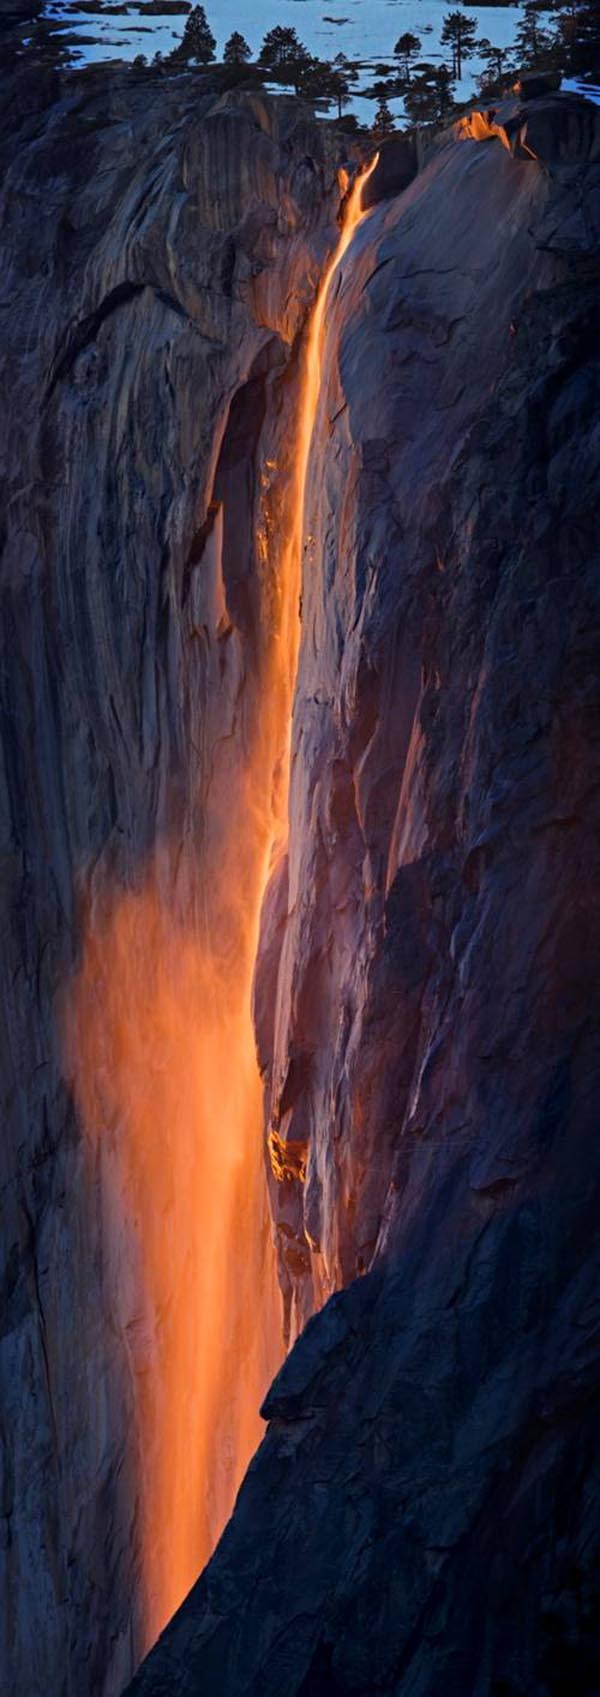 Lavafall at Yosemite